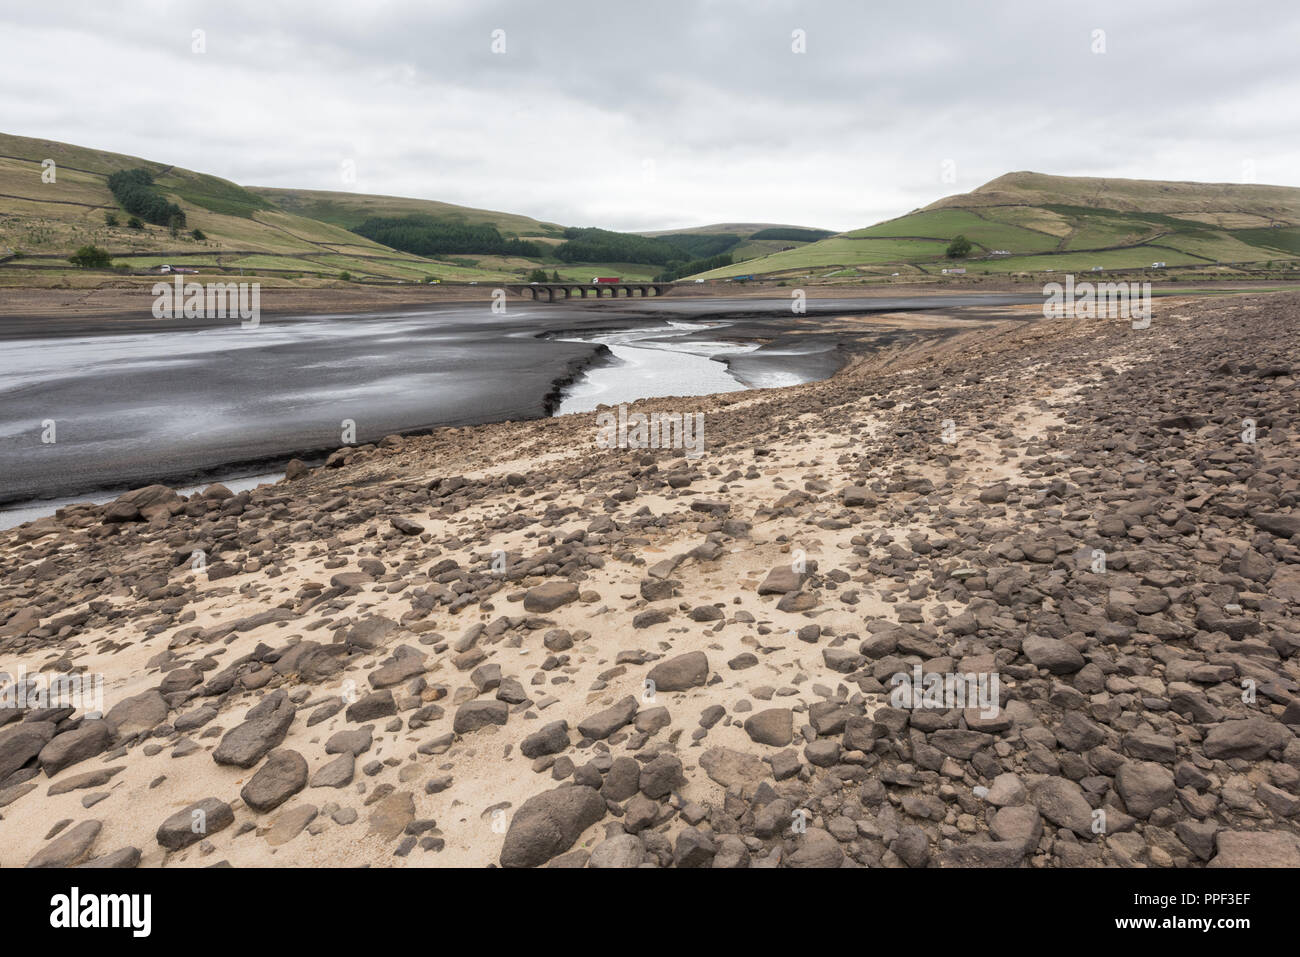 Looking across the dried out Woodhead Reservoir towards Heyden Moor, Derbyshire - Stock Image